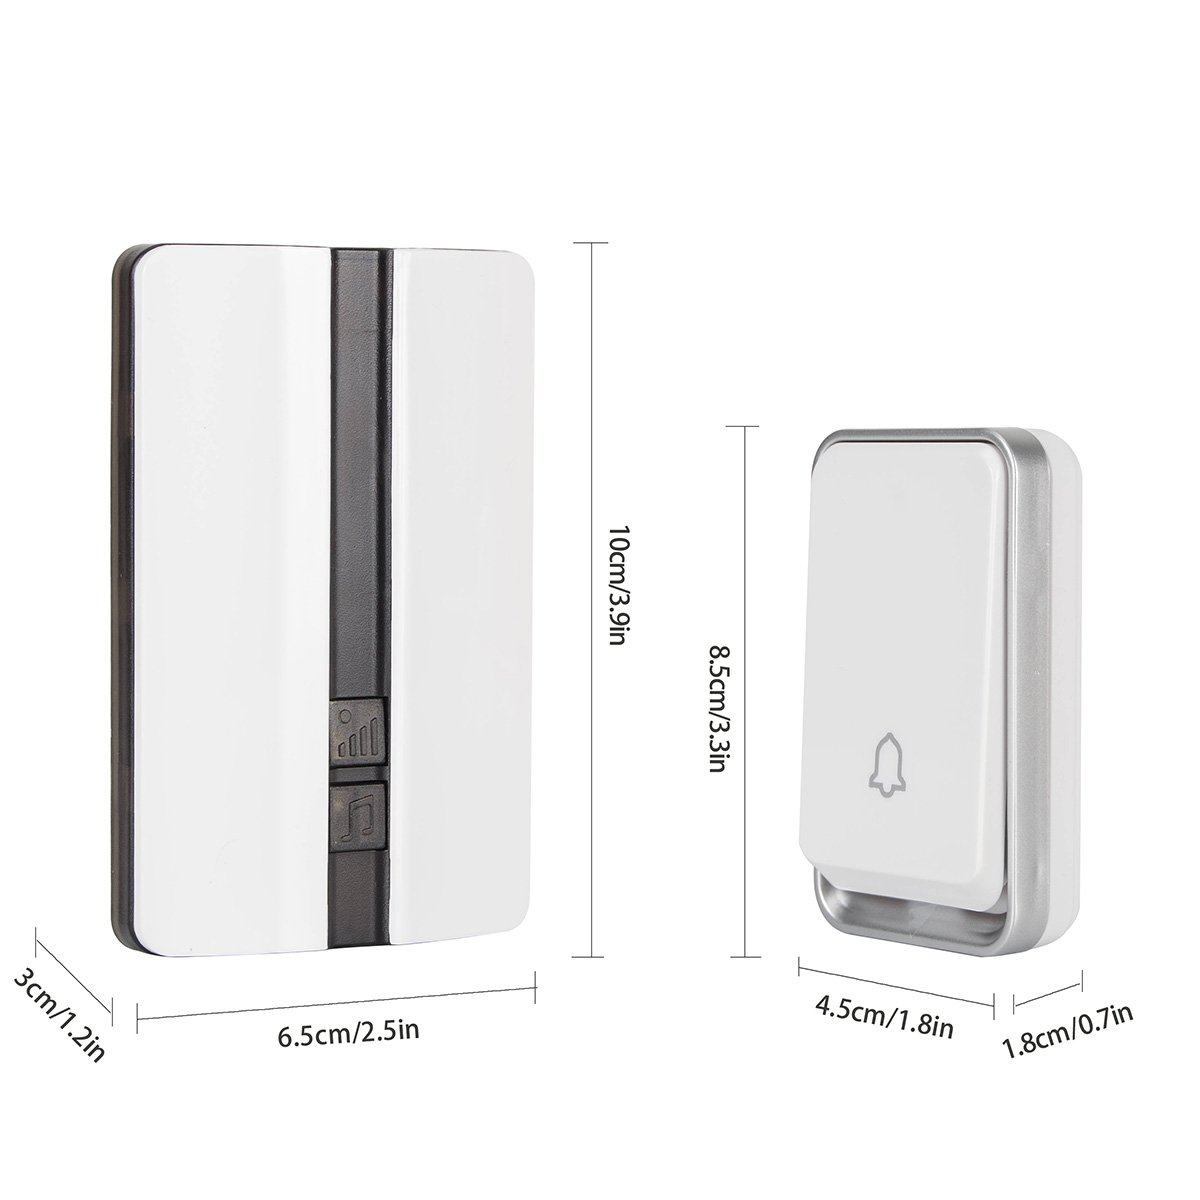 Opard No-Need-Battery Waterproof Push Button Chime Kit 2 Plug-in Receivers /& 1 Push Button 300M Long Range Remote Control with LED Indicator 36 Chimes No Need Battery Wireless Door Bell